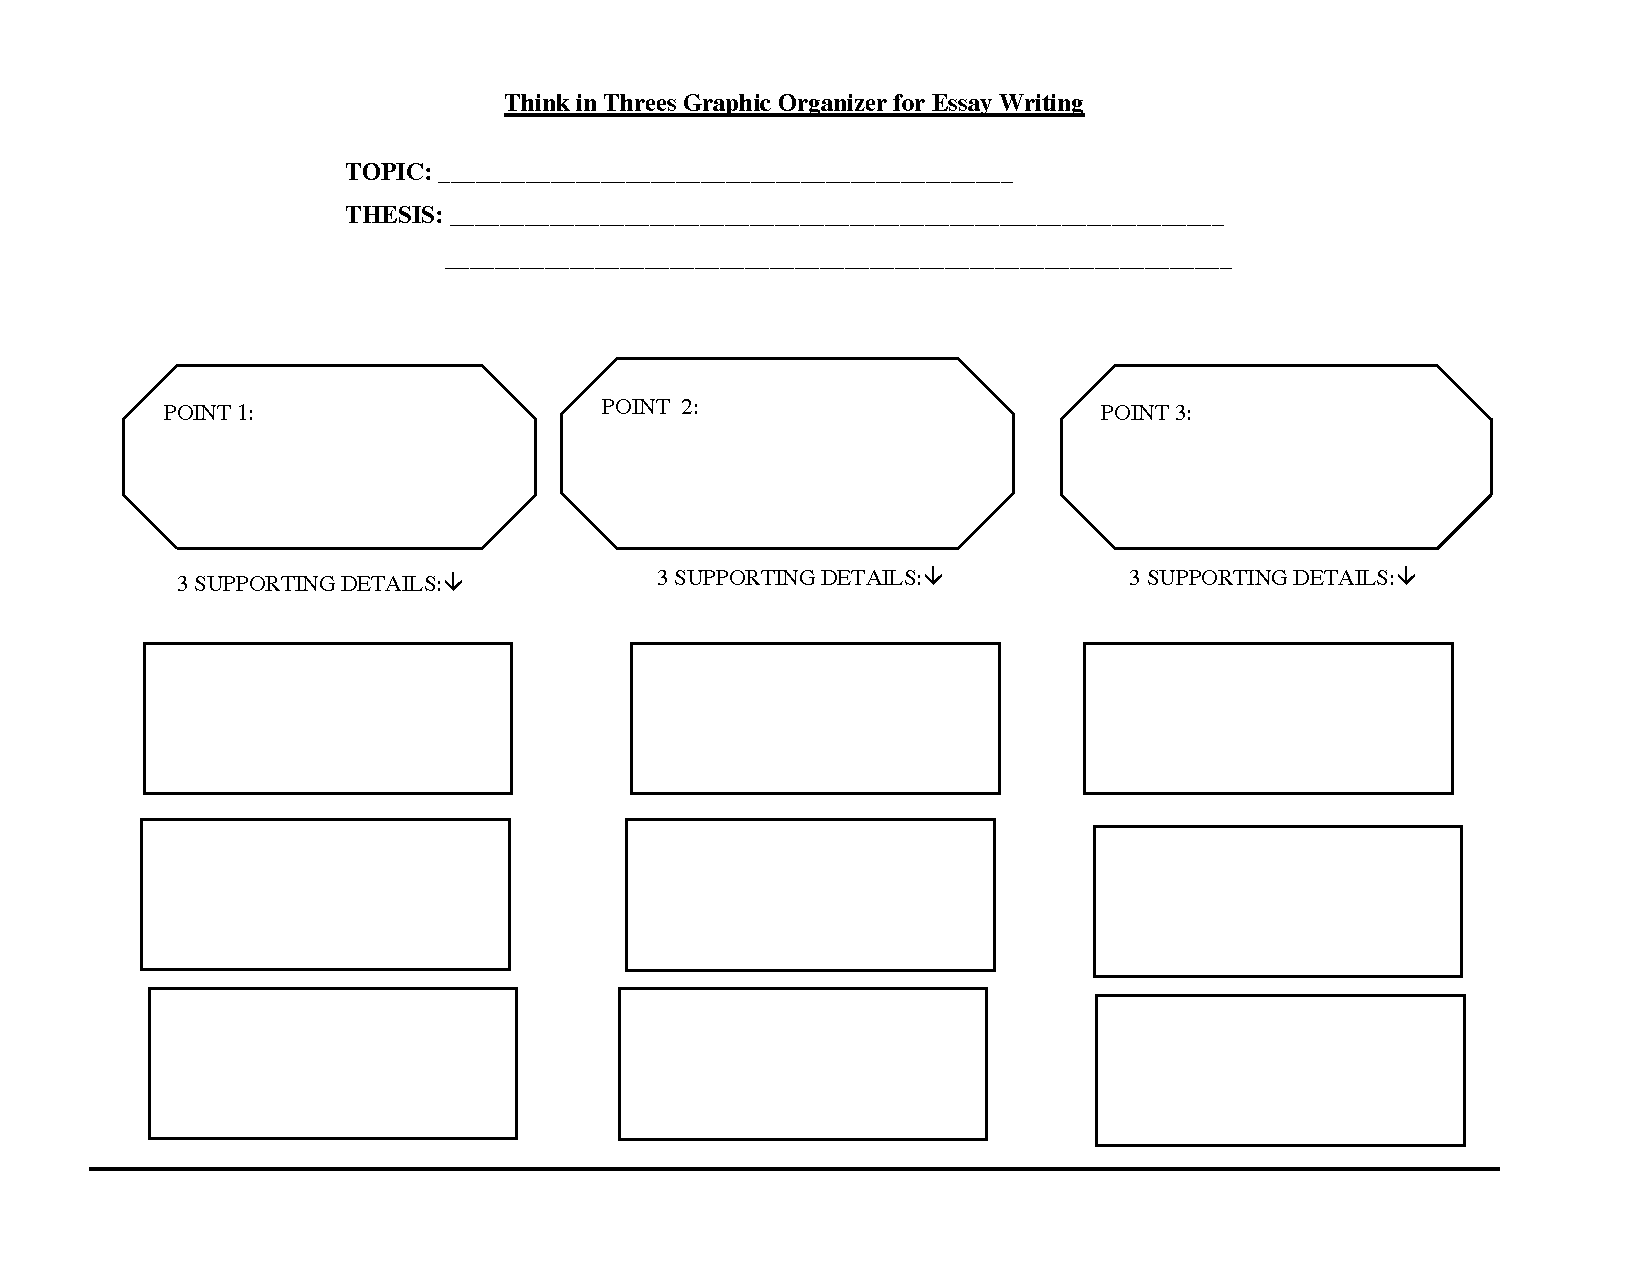 think in threes graphic organizer for essay writing topic think in threes graphic organizer for essay writing topic